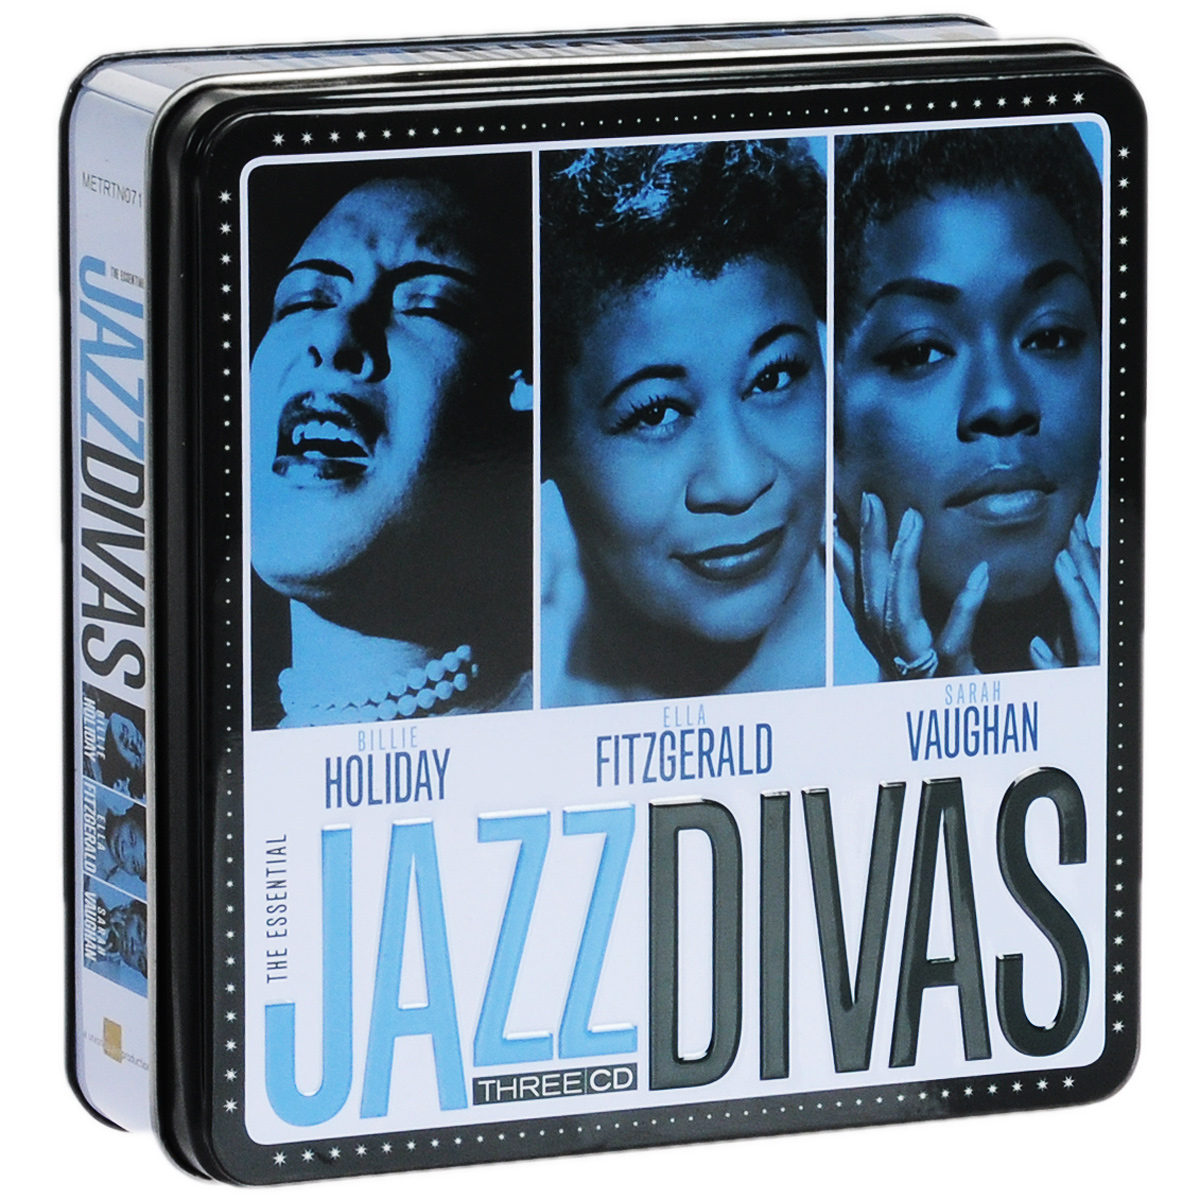 Элла Фитцжеральд,Билли Холидей,Сара Воэн Billie Holiday, Ella Fitzgerald, Sarah Vaughan. The Essential Jazz Divas (3CD) cd billie holiday the centennial collection